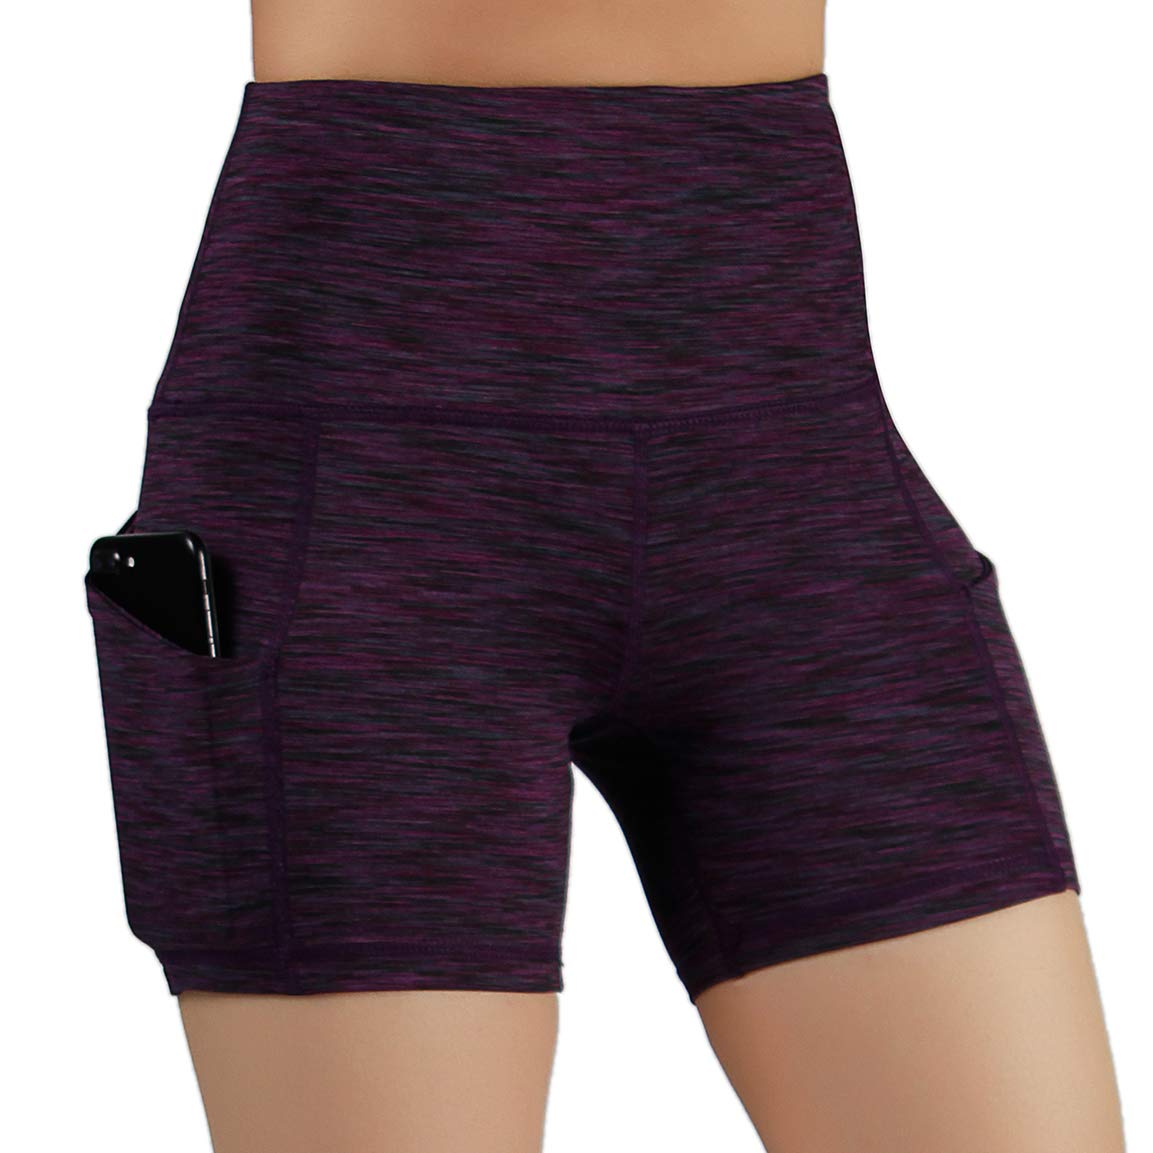 ODODOS High Waist Out Pocket Yoga Short Tummy Control Workout Running Athletic Non See-Through Yoga Shorts,SpaceDyeWine,X-Small by ODODOS